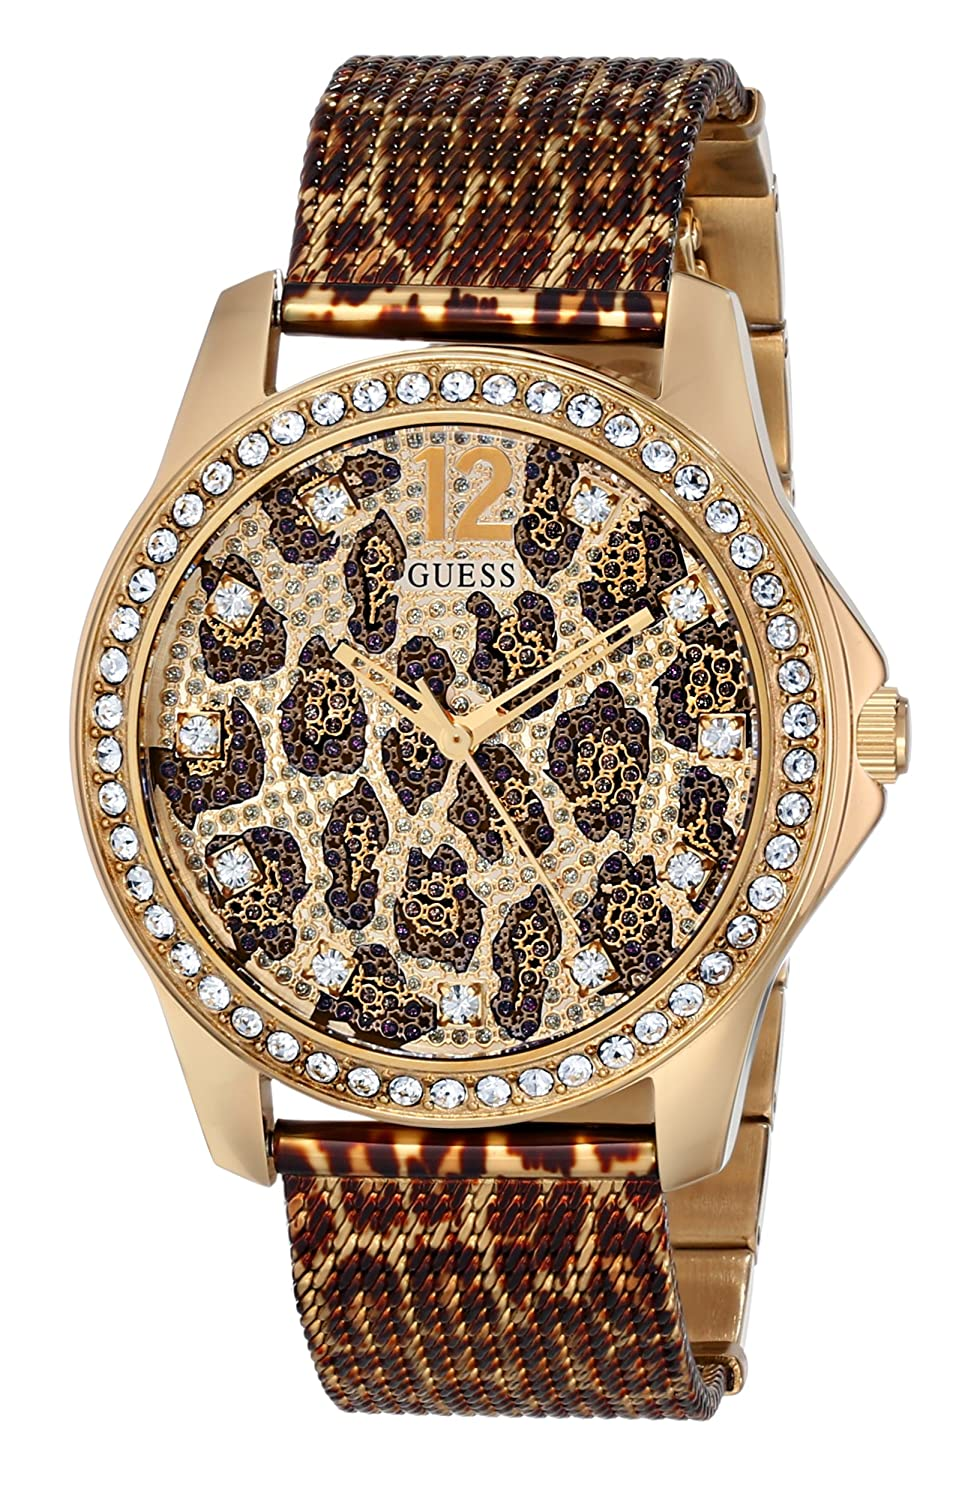 animal repair just click watches watch s image enlarge cavalli to